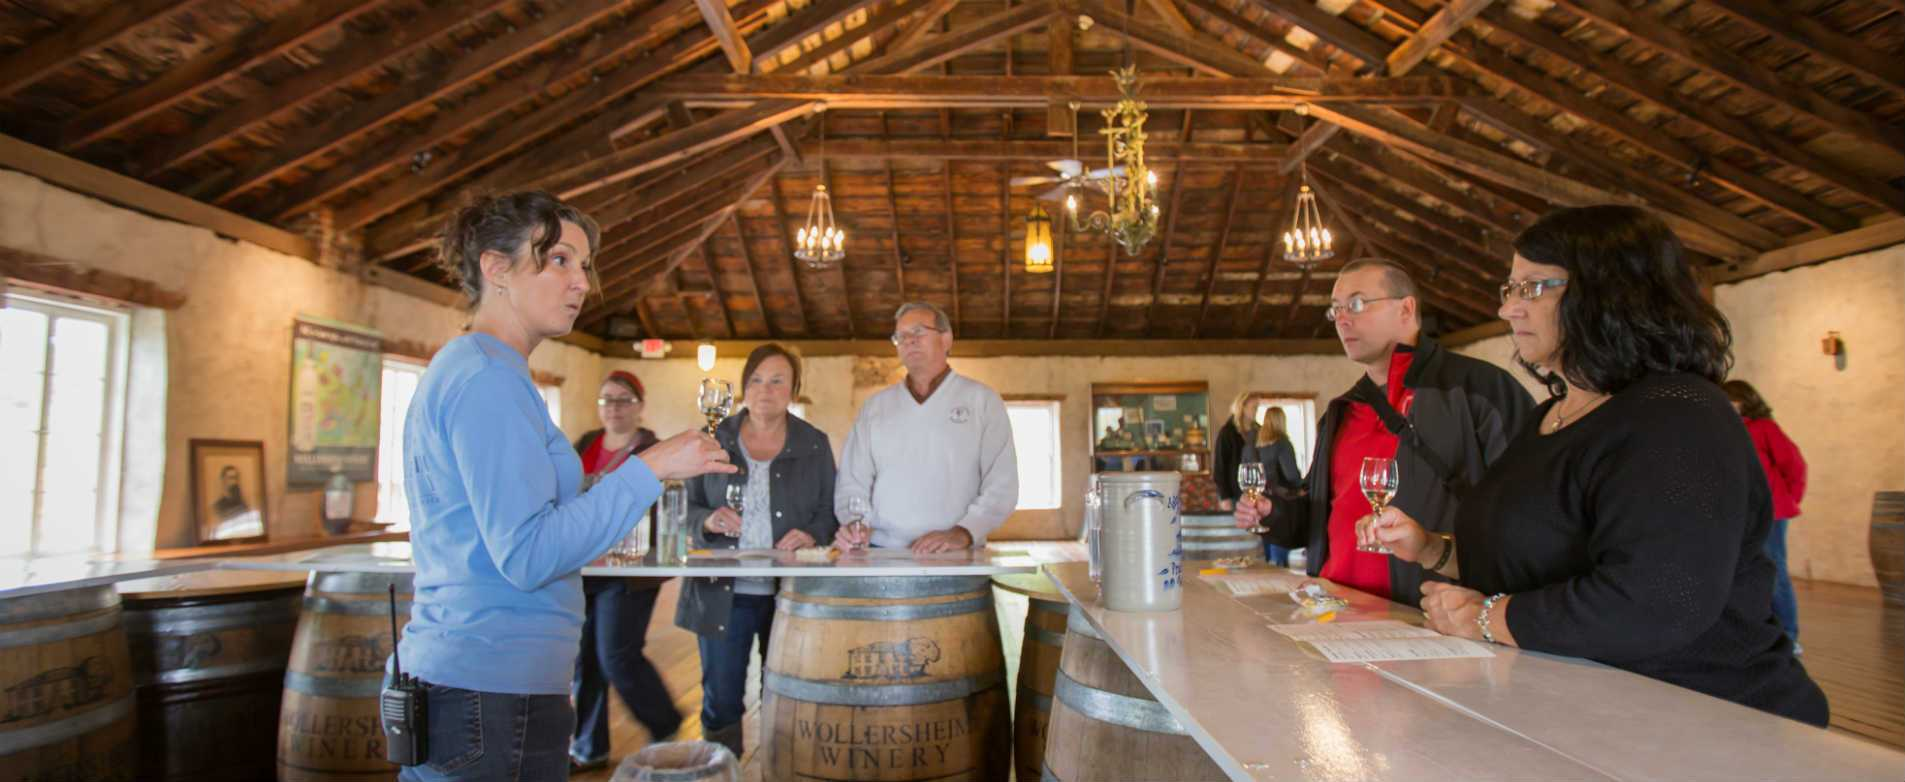 Wine Sampling at Wollersheim Winery